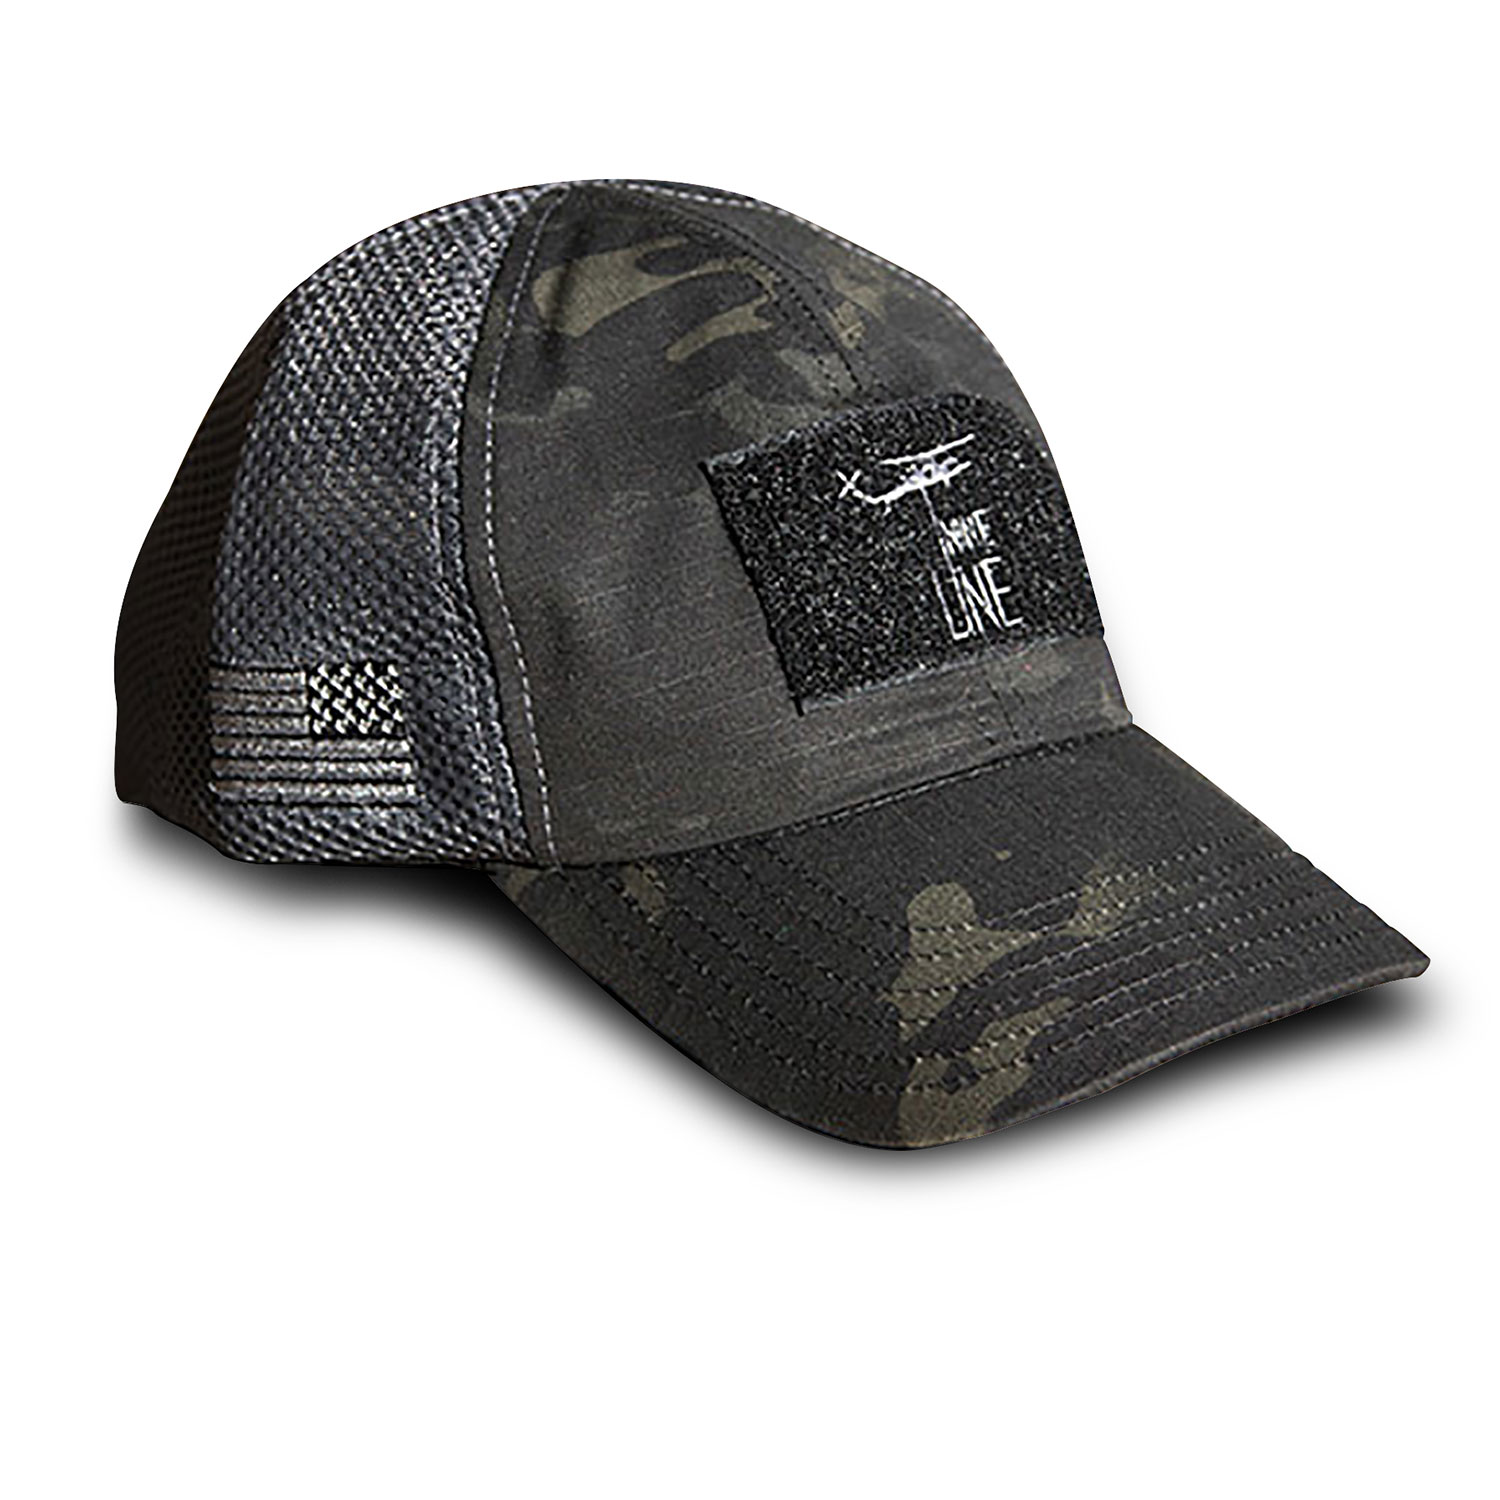 Nine Line Mesh Back Hat with Drop Line Logo